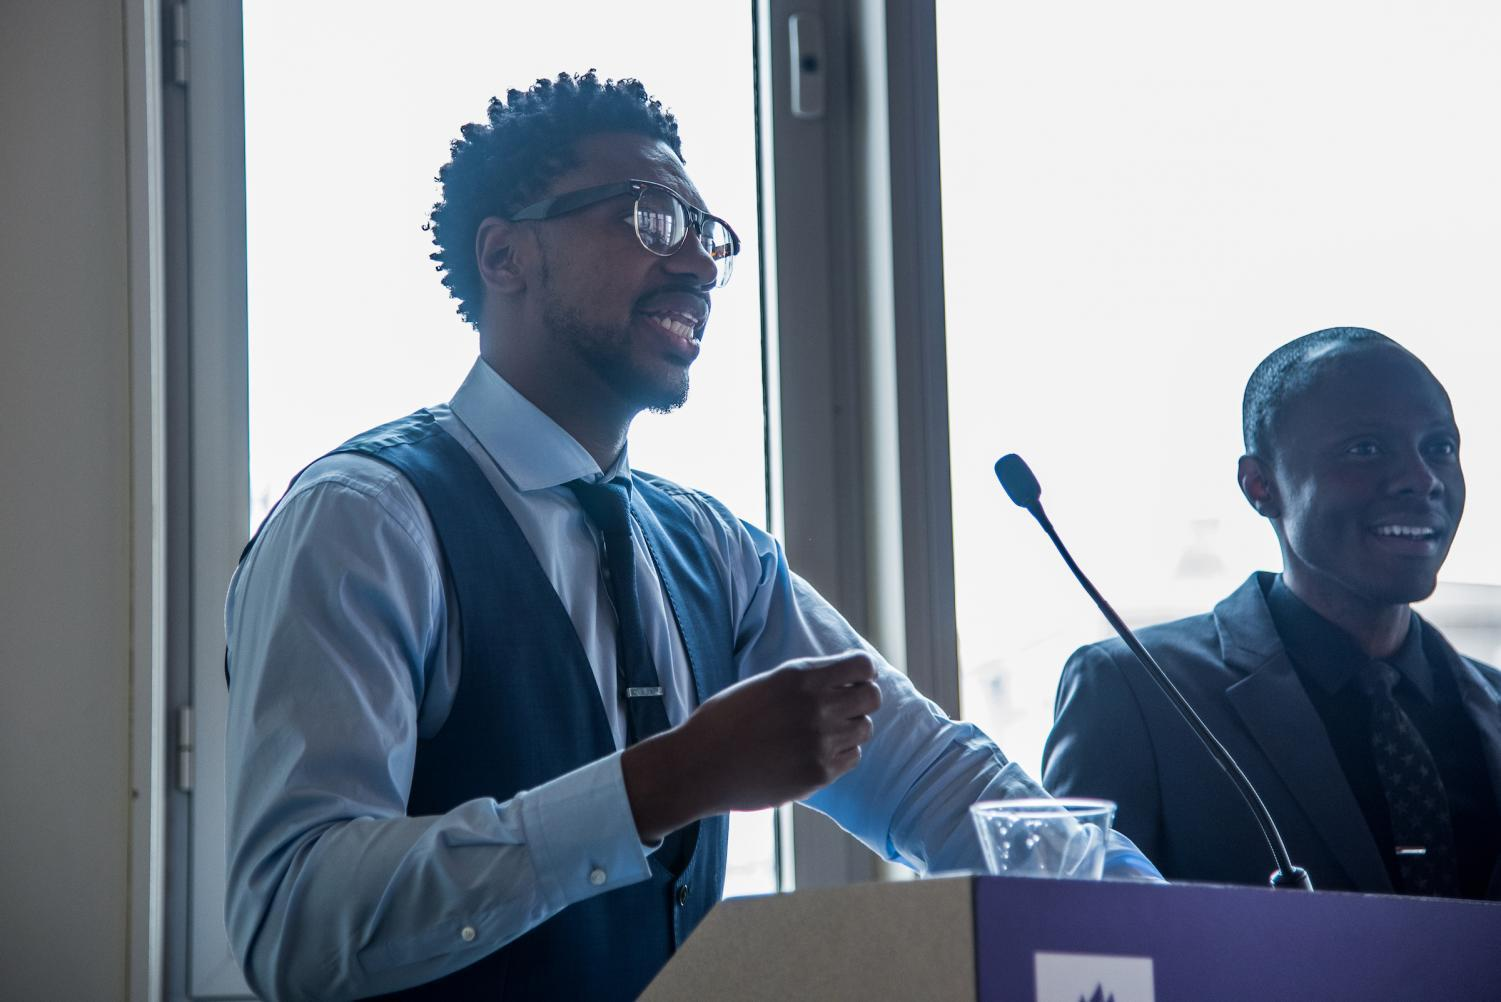 Marcus Johnson, DDS '08 (L), and Edly Destine, DDS '13, deliver the keynote address at a College of Dentistry brunch on March 4. Johnson started mentoring Destine years ago and they have remained friends since.